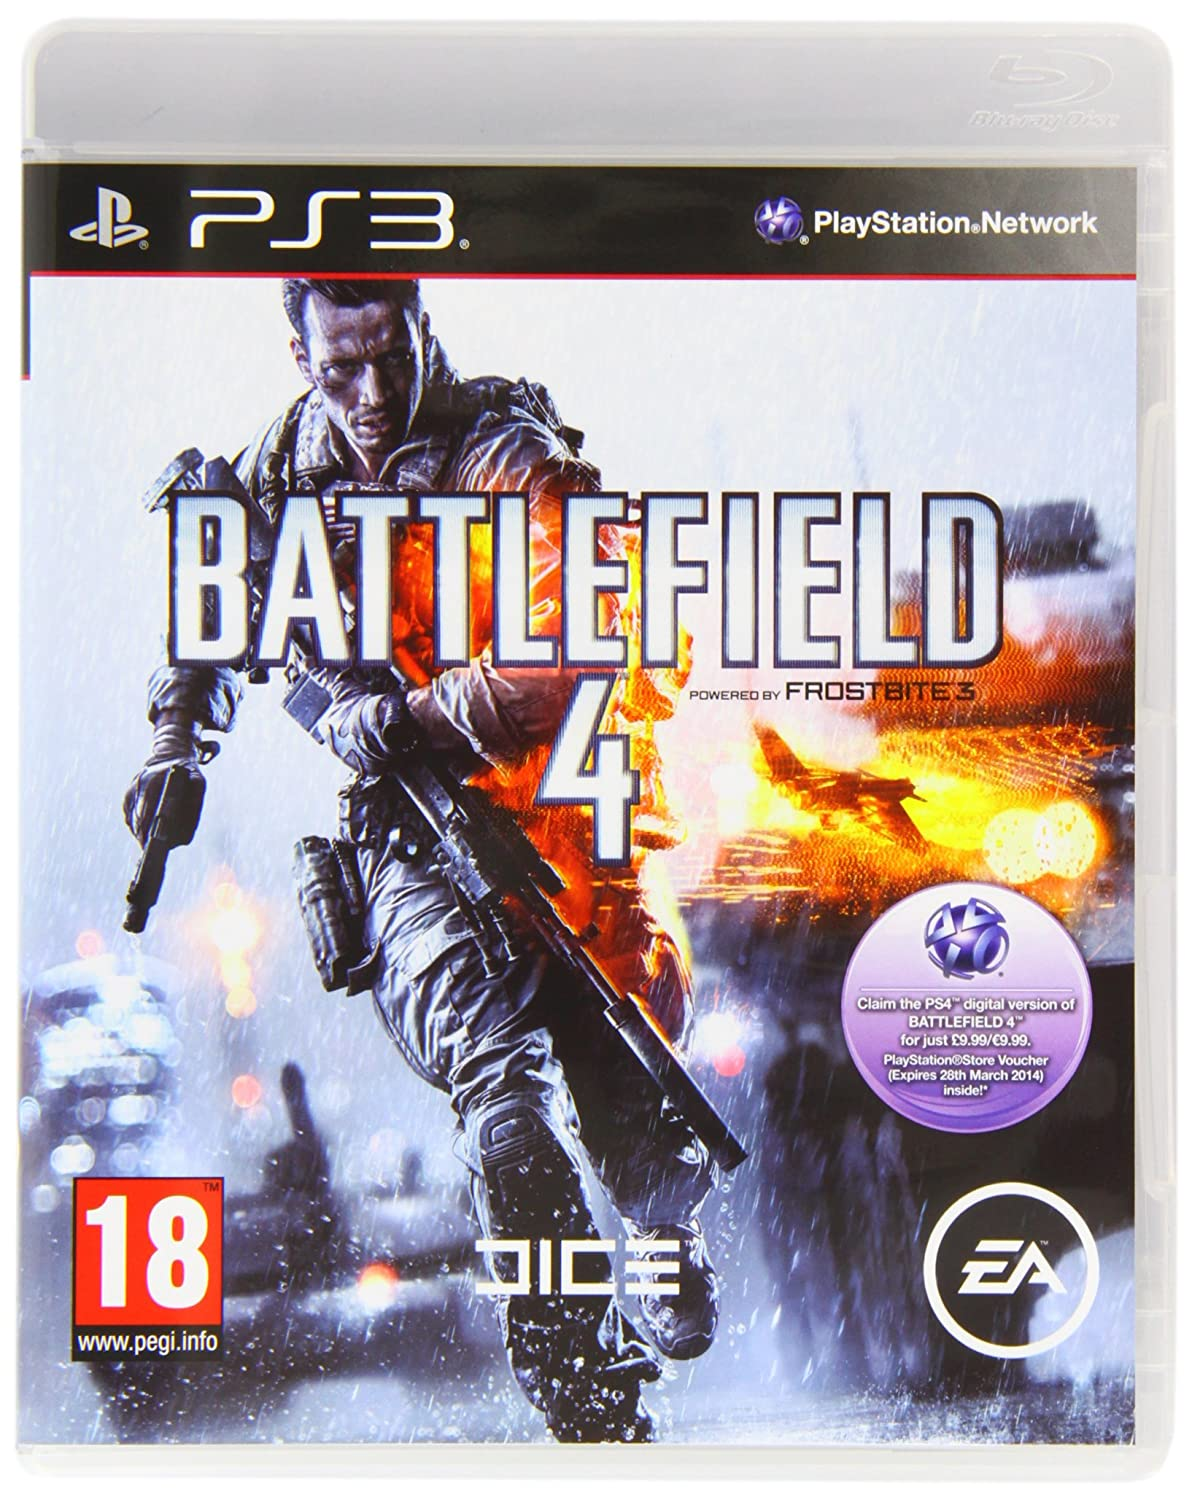 Battlefield 4 Ps3 Cover | www.pixshark.com - Images ...